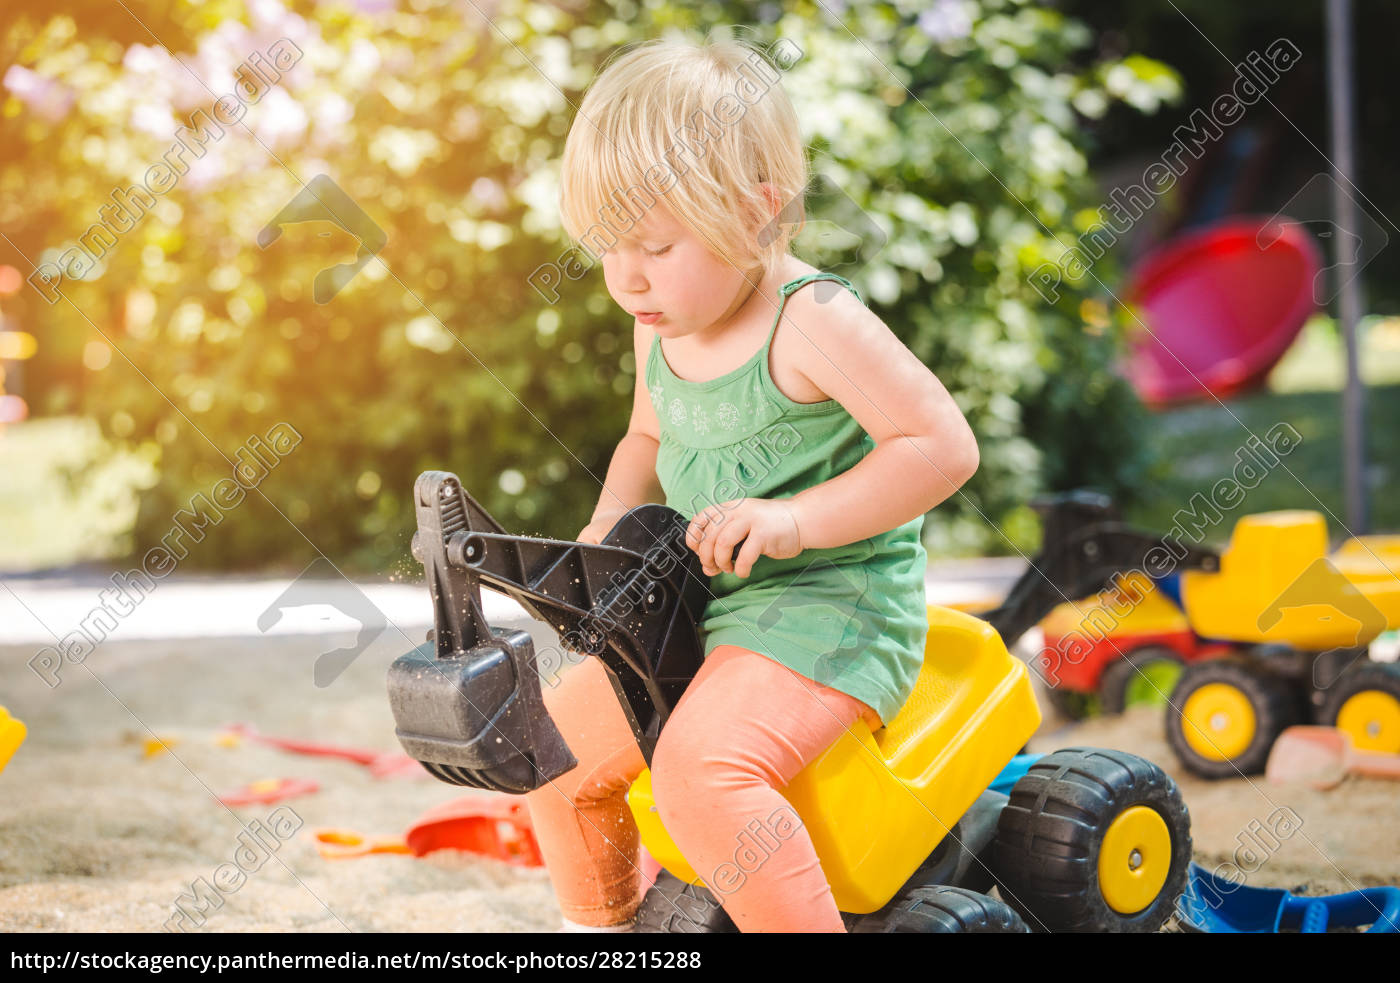 child, riding, on, a, toy, tractor - 28215288